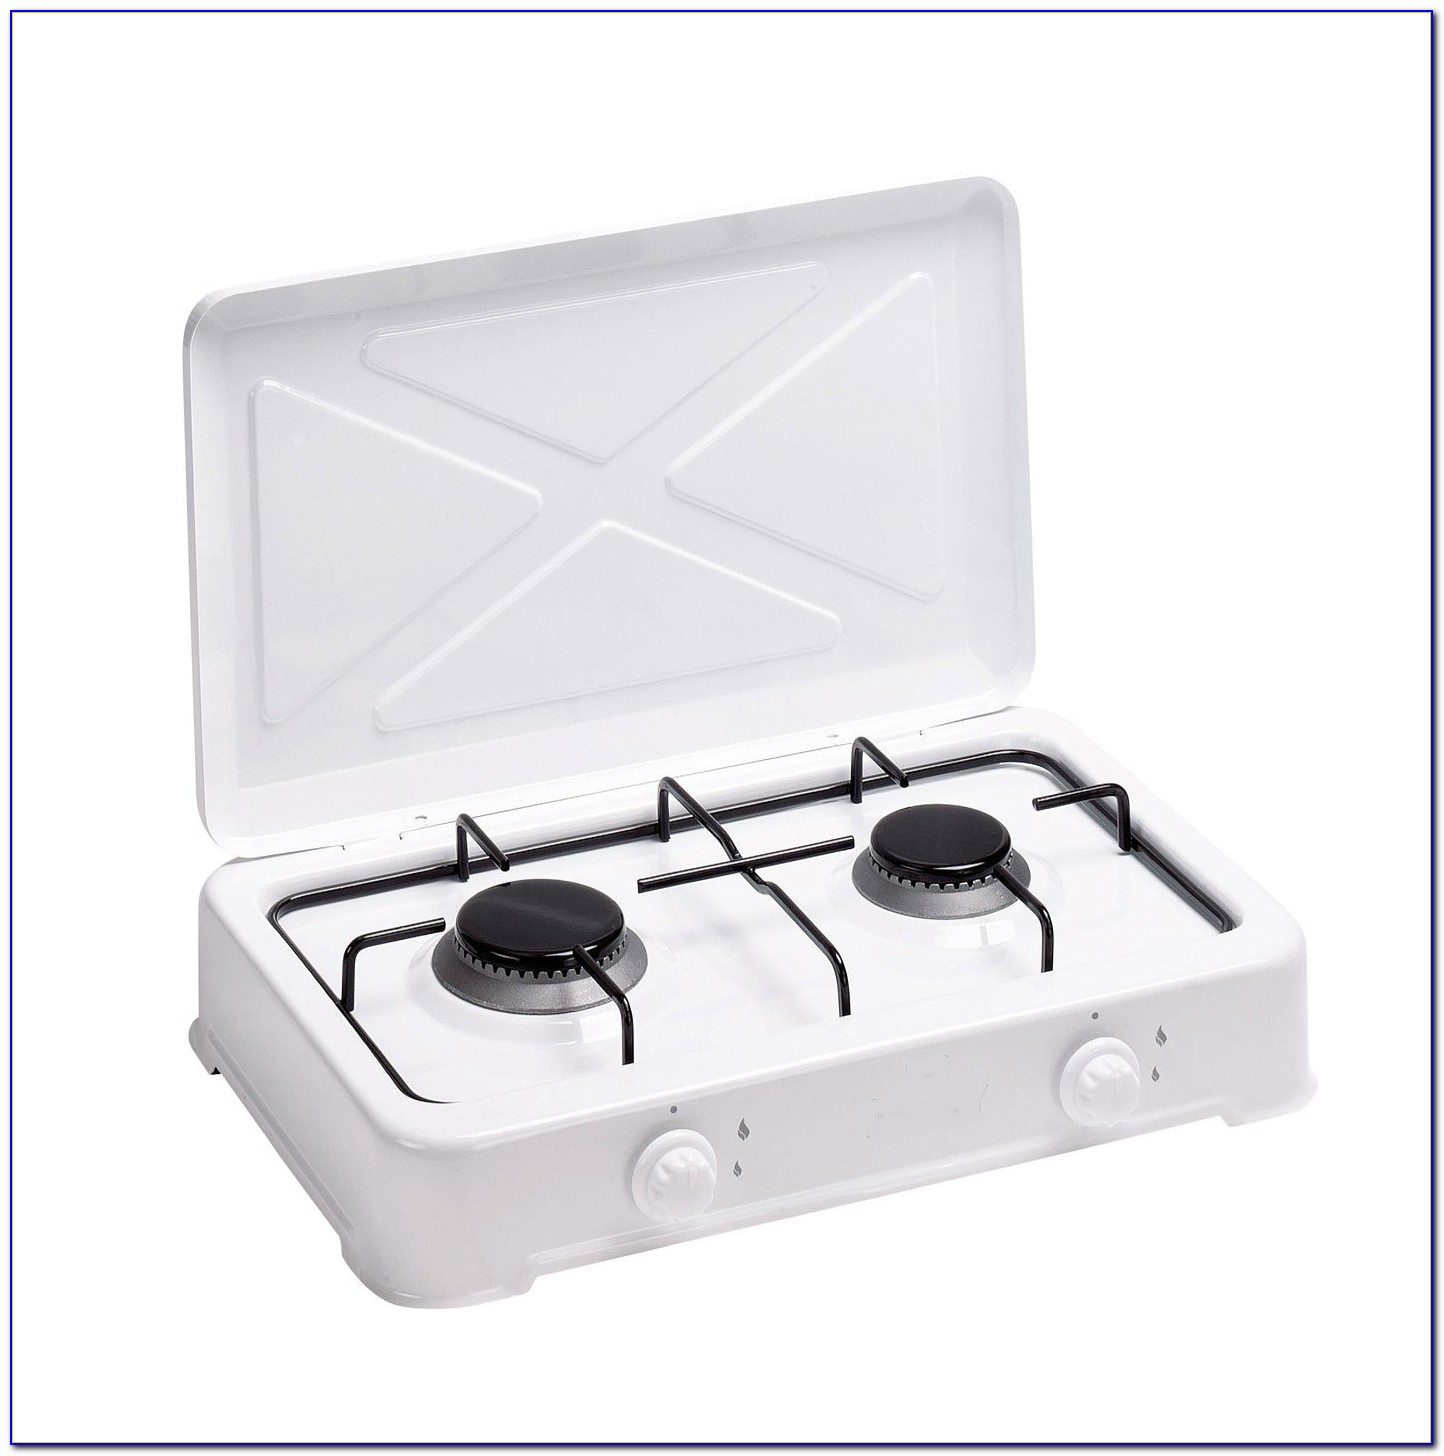 Table Top Gas Burner In India